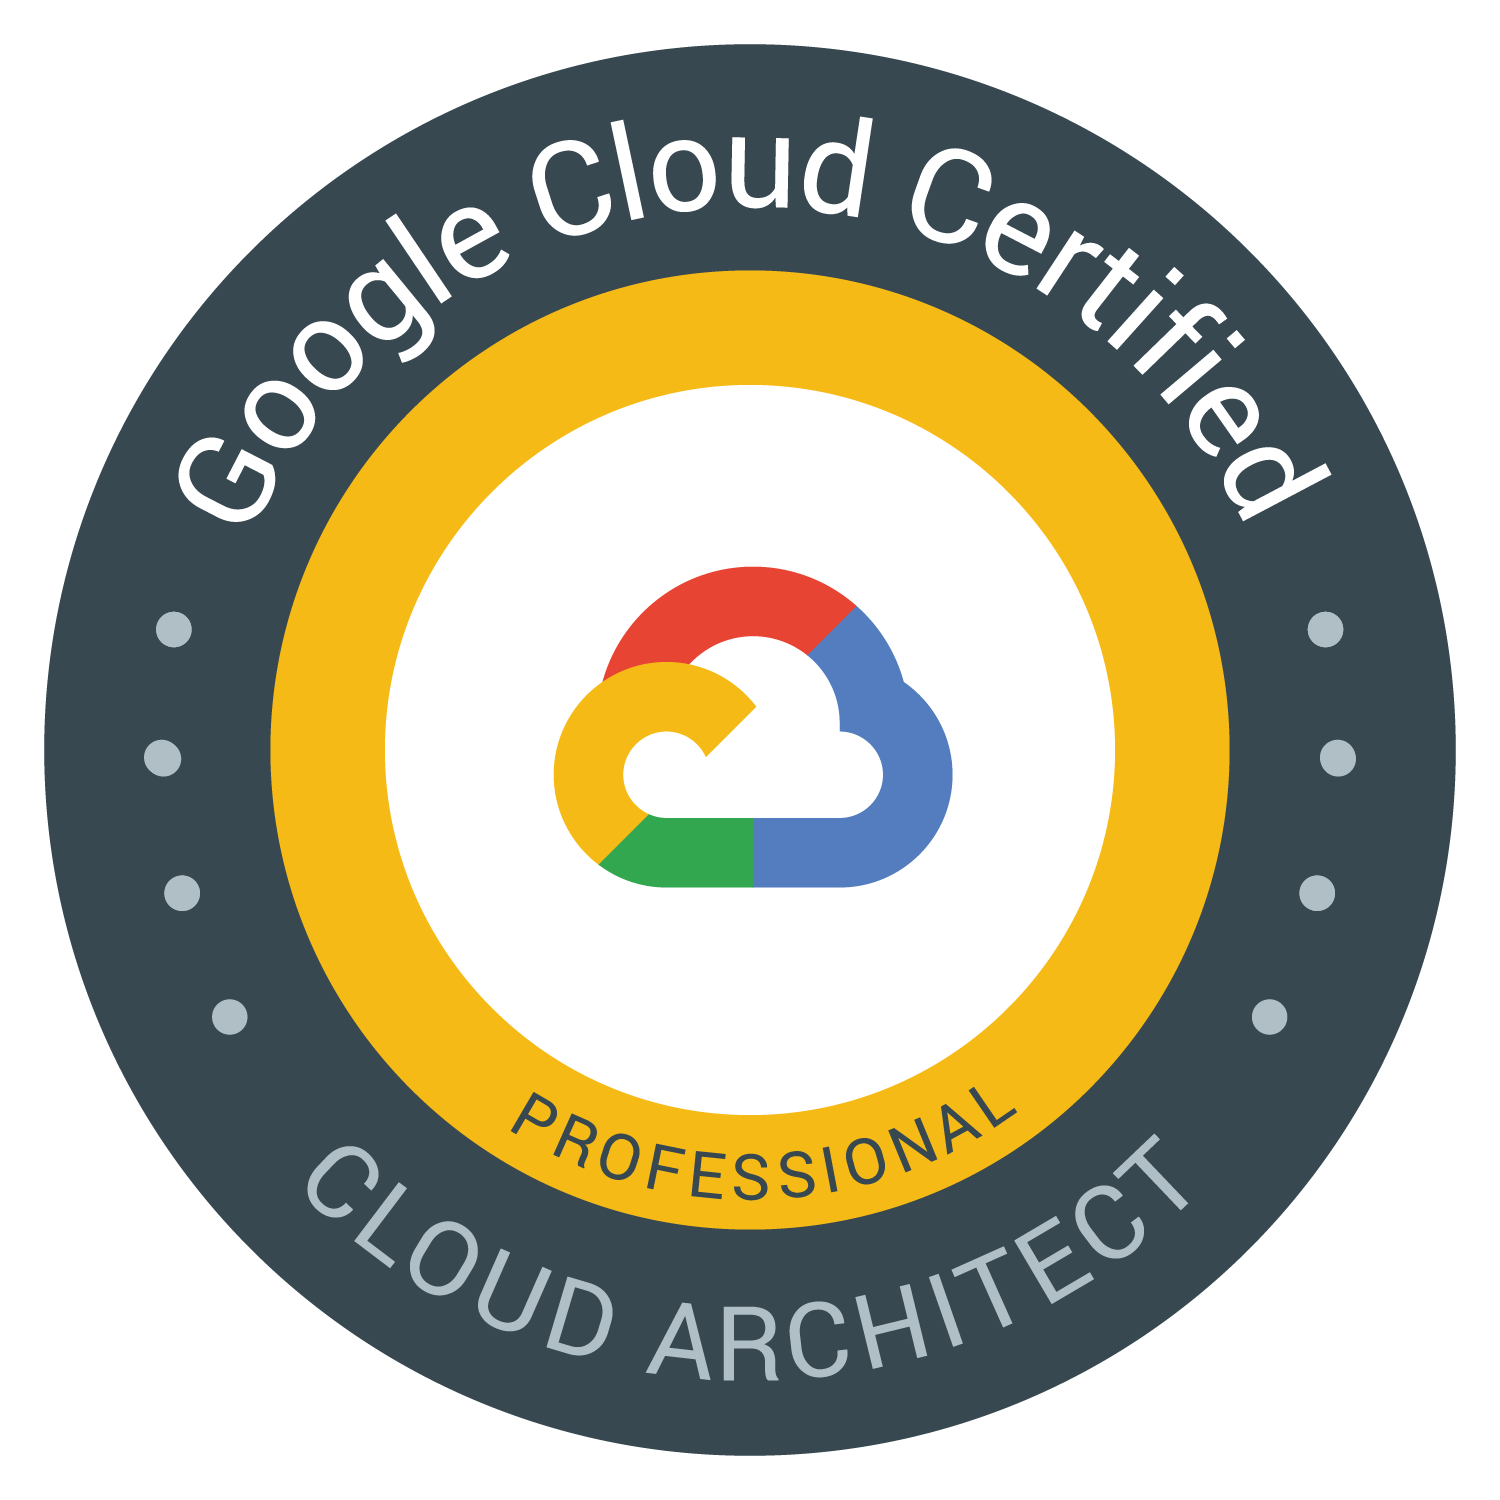 Professional Cloud Architect